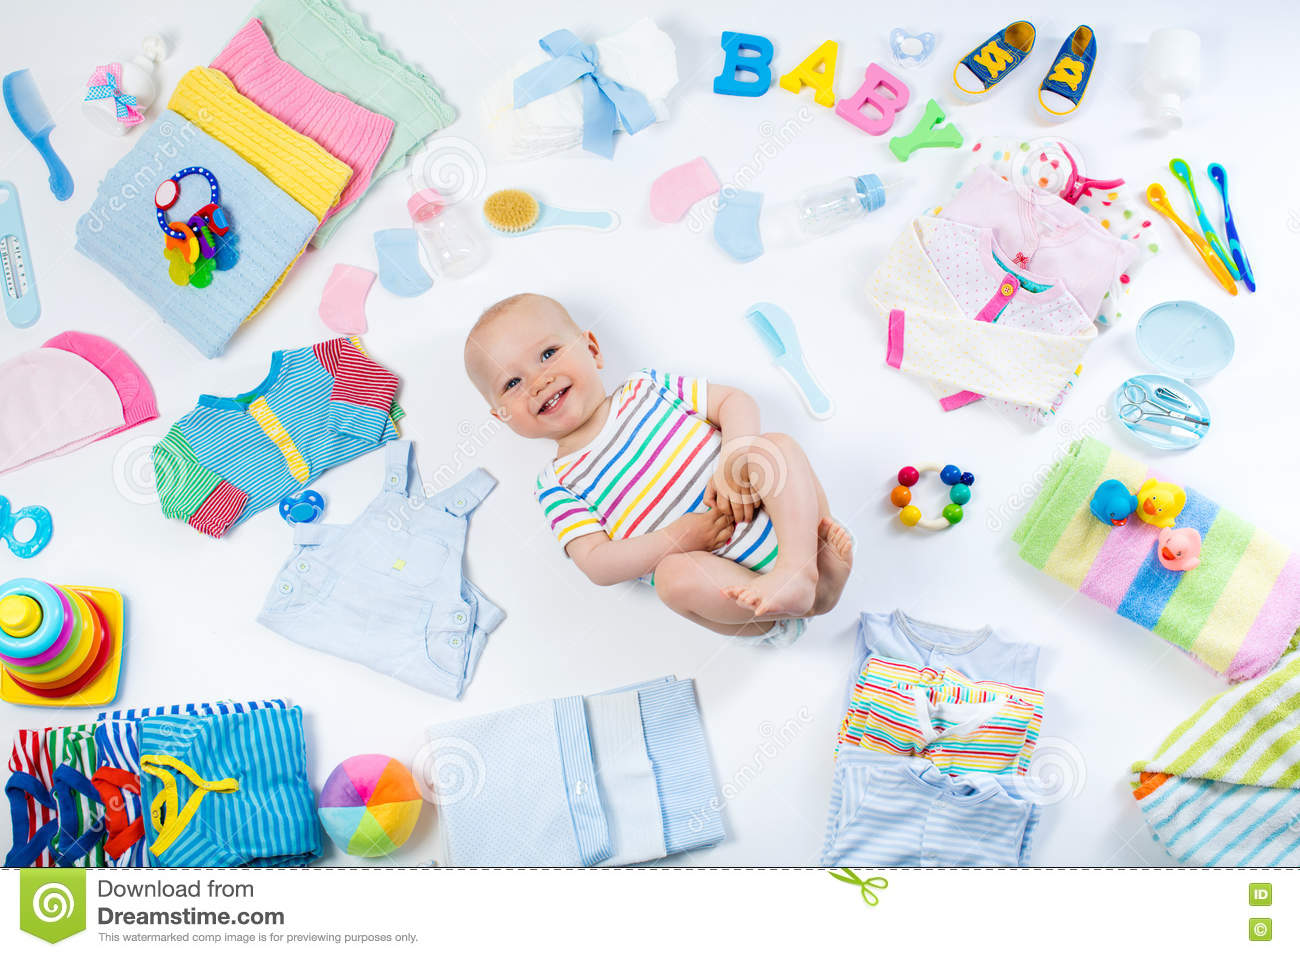 cd2dcf9e1241 Baby With Clothing And Infant Care Items Stock Photo - Image of bath ...